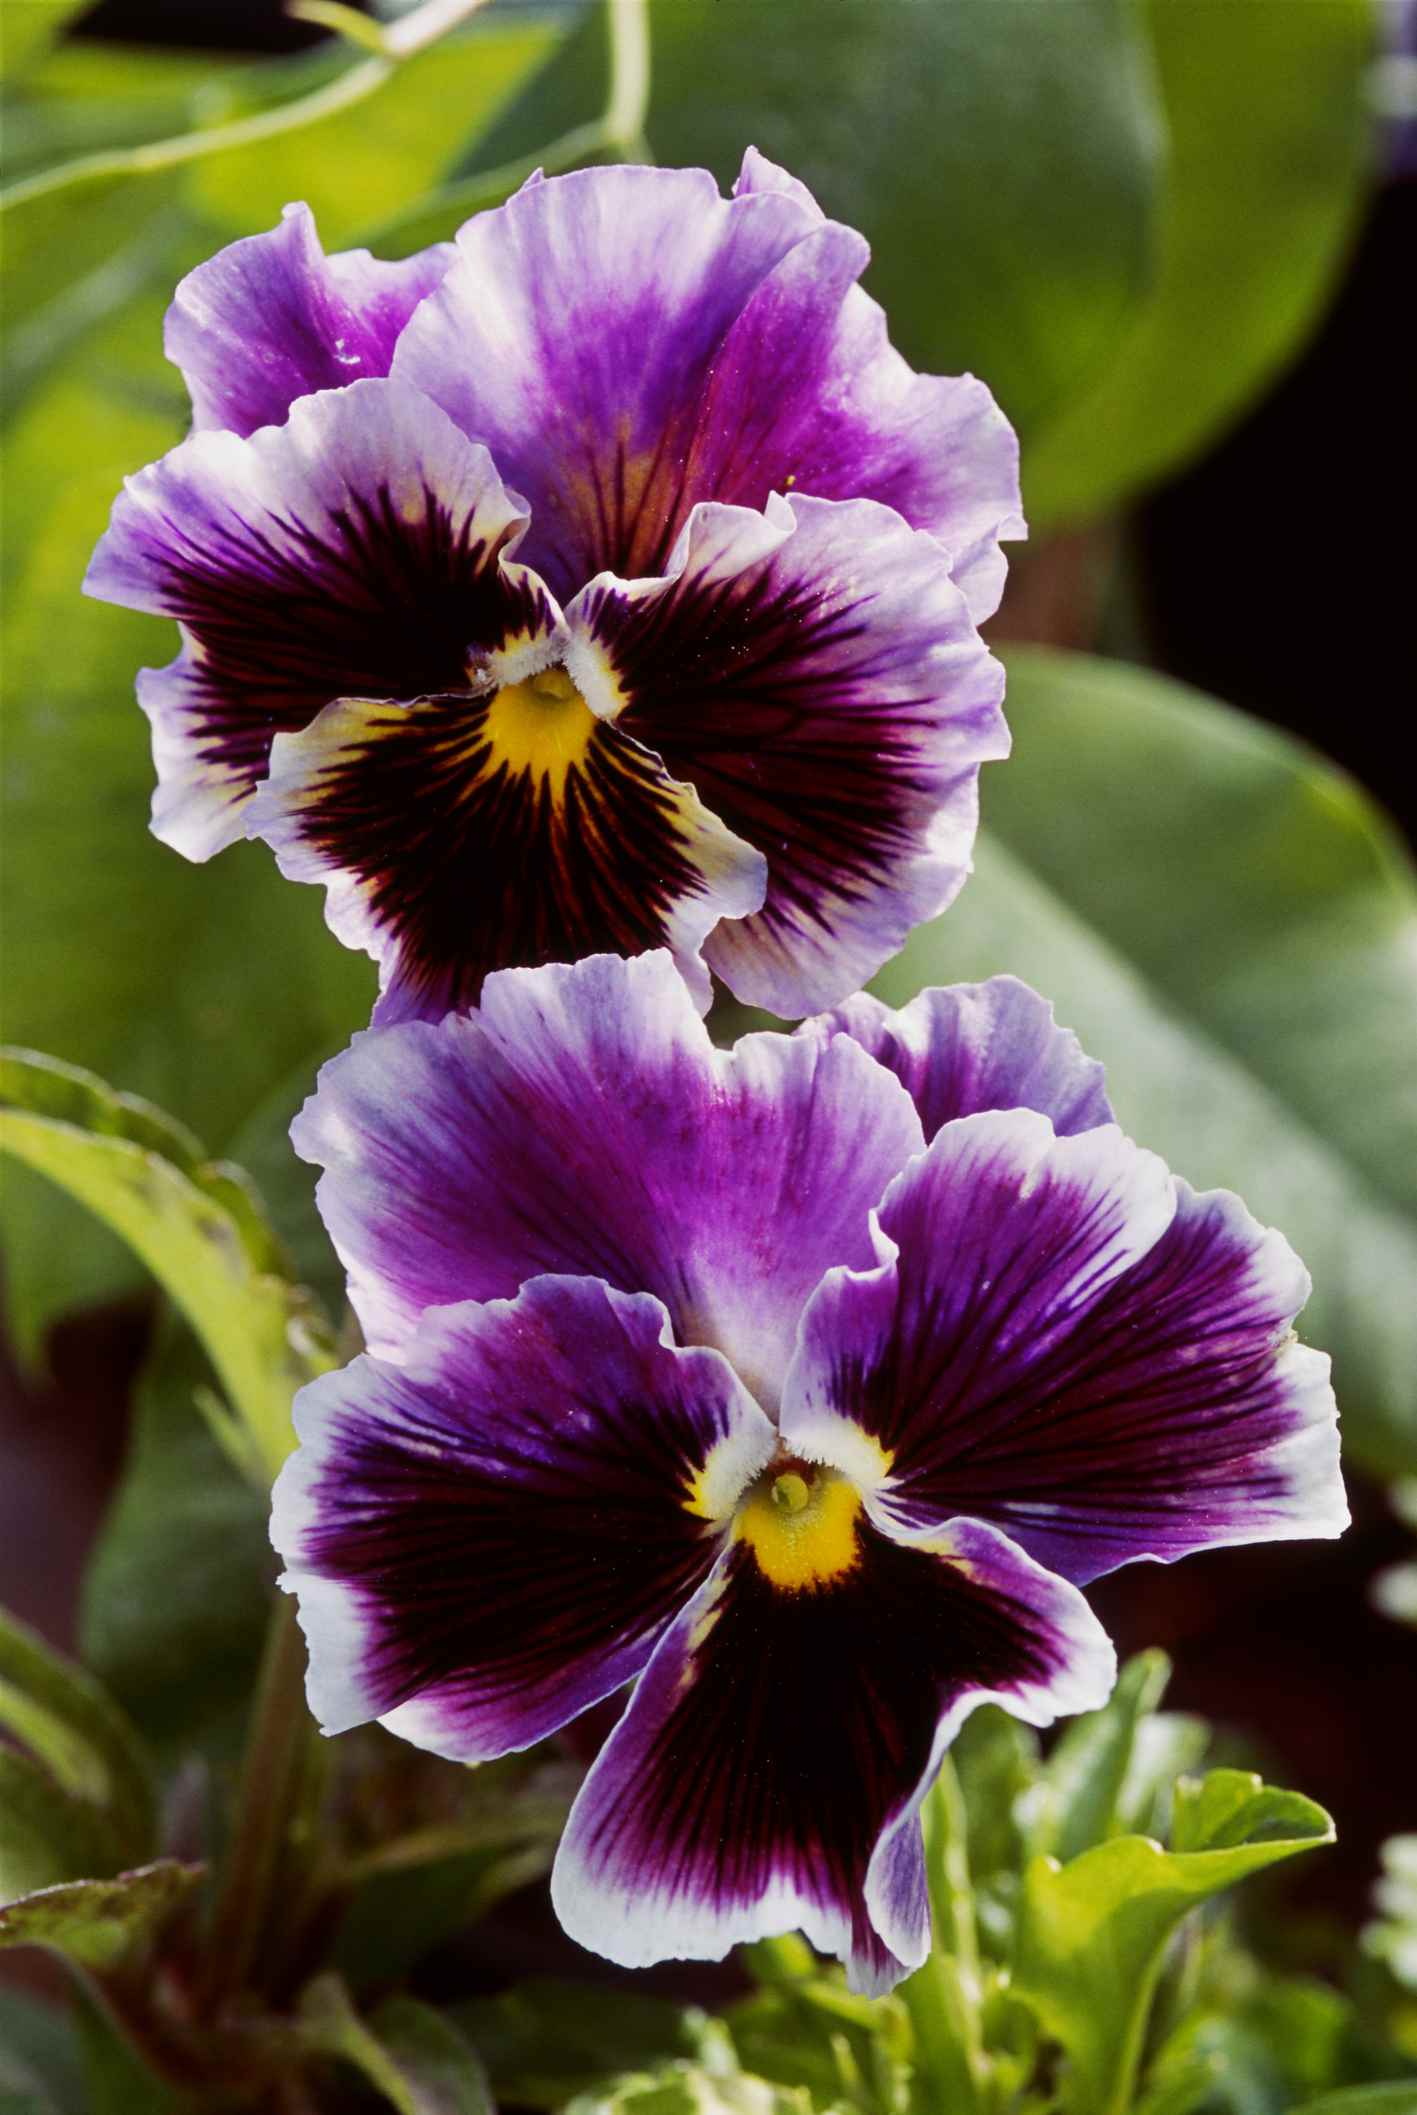 'Chalon Supreme' pansies with white-edged purple petals and yellow centers